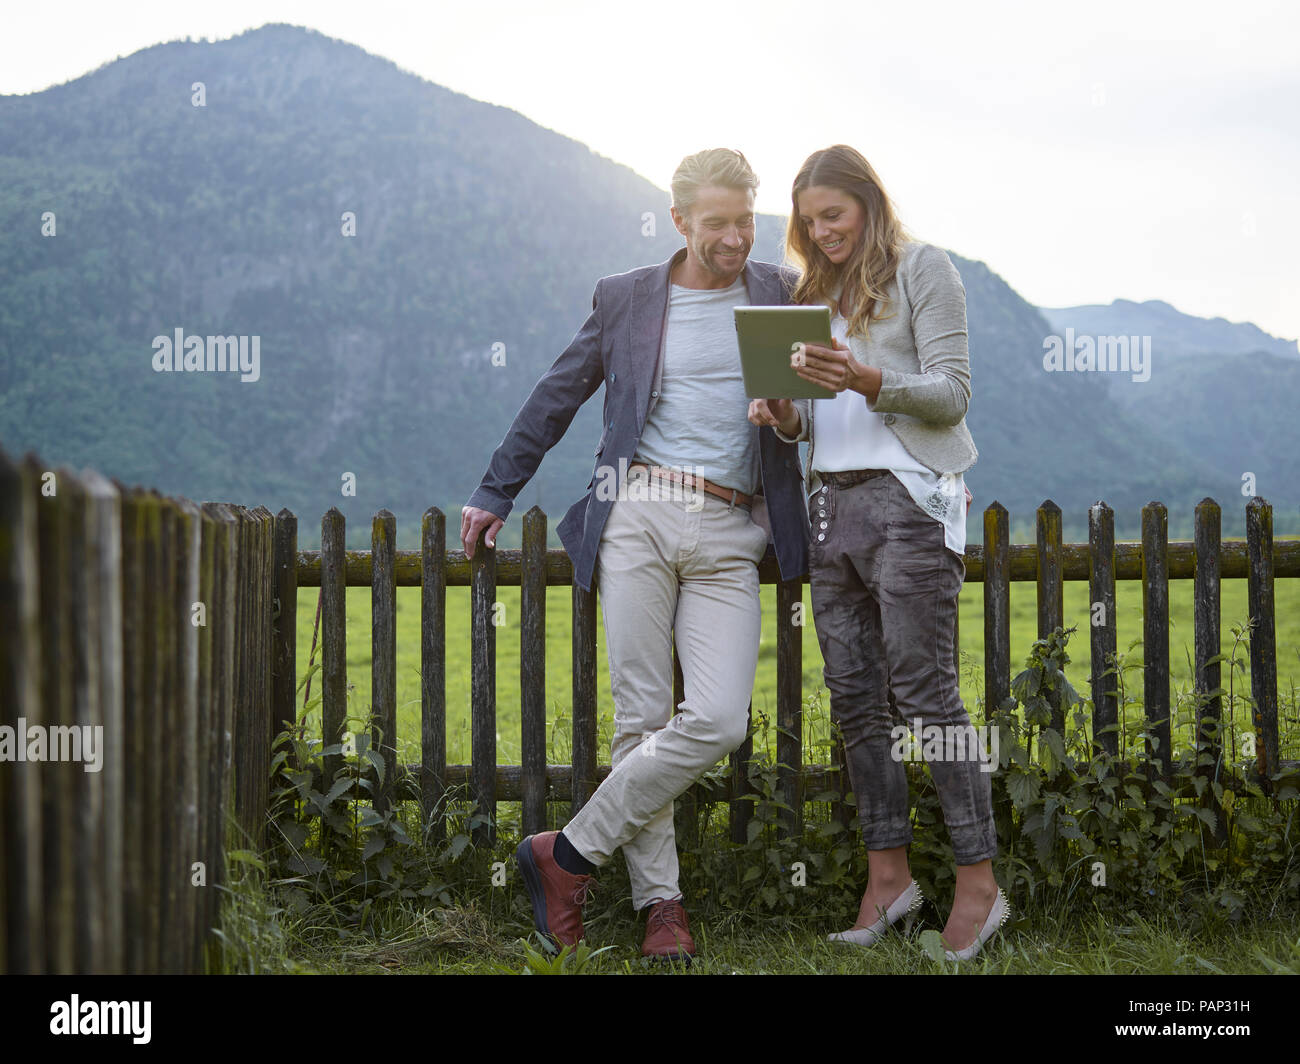 Man and woman sharing tablet in rural landscape - Stock Image